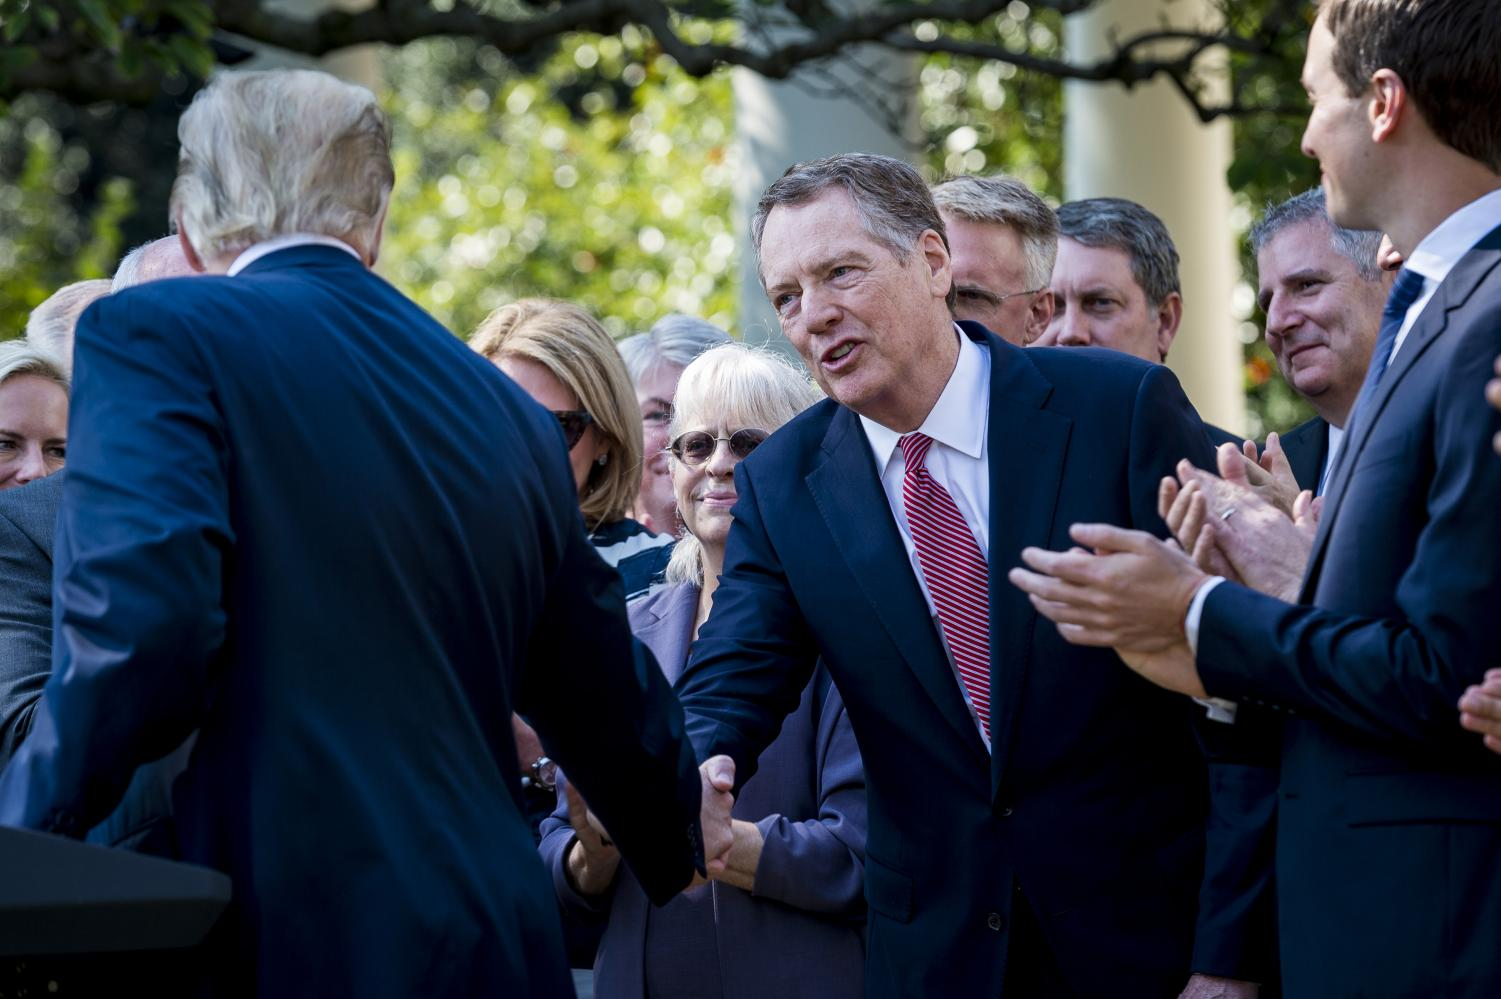 President Donald J. Trump congratulates U.S. Trade Representative Robert Lighthizer as he delivers remarks on the United States Mexico Canada Agreement (USMCA) in the Rose Garden at the White House on Monday, Oct. 1, 2018 in Washington, D.C. President Trump announced the United States and Canada have agreed to a deal replacing the North American Free Trade Agreement. (Pete Marovich/Abaca Press/TNS)